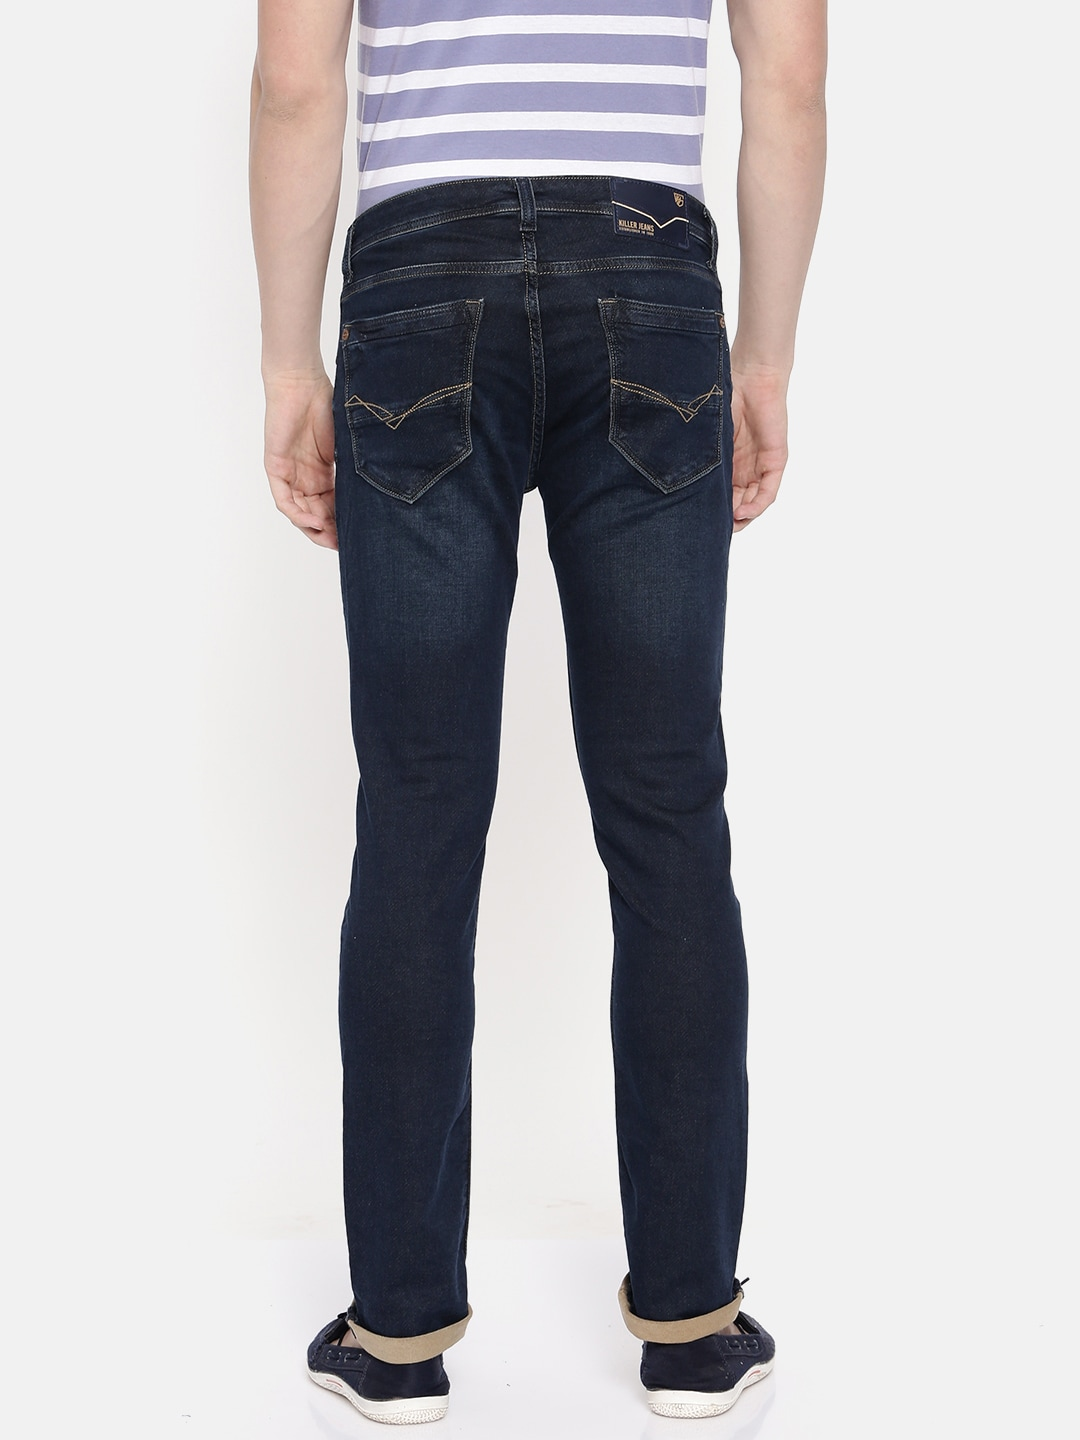 Killer Men Blue Slim Fit Mid-Rise Clean Look Stretchable Jeans